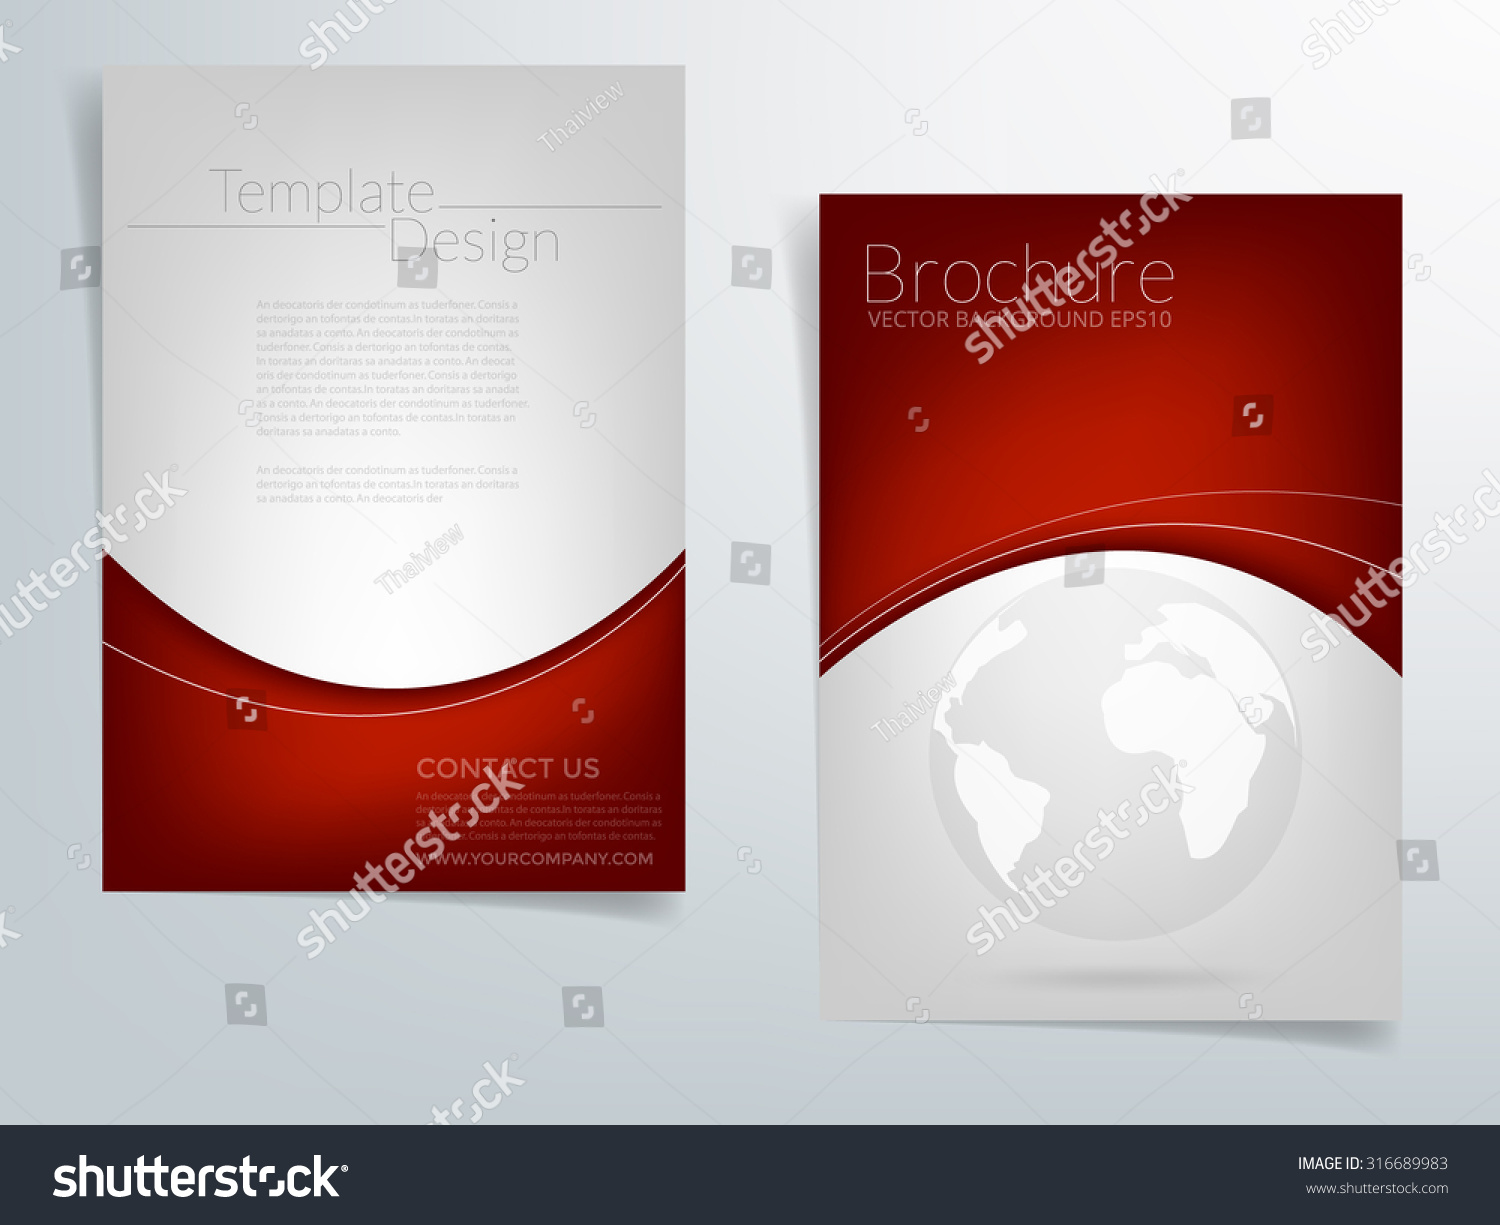 Brochure background design red the for Red brochure template